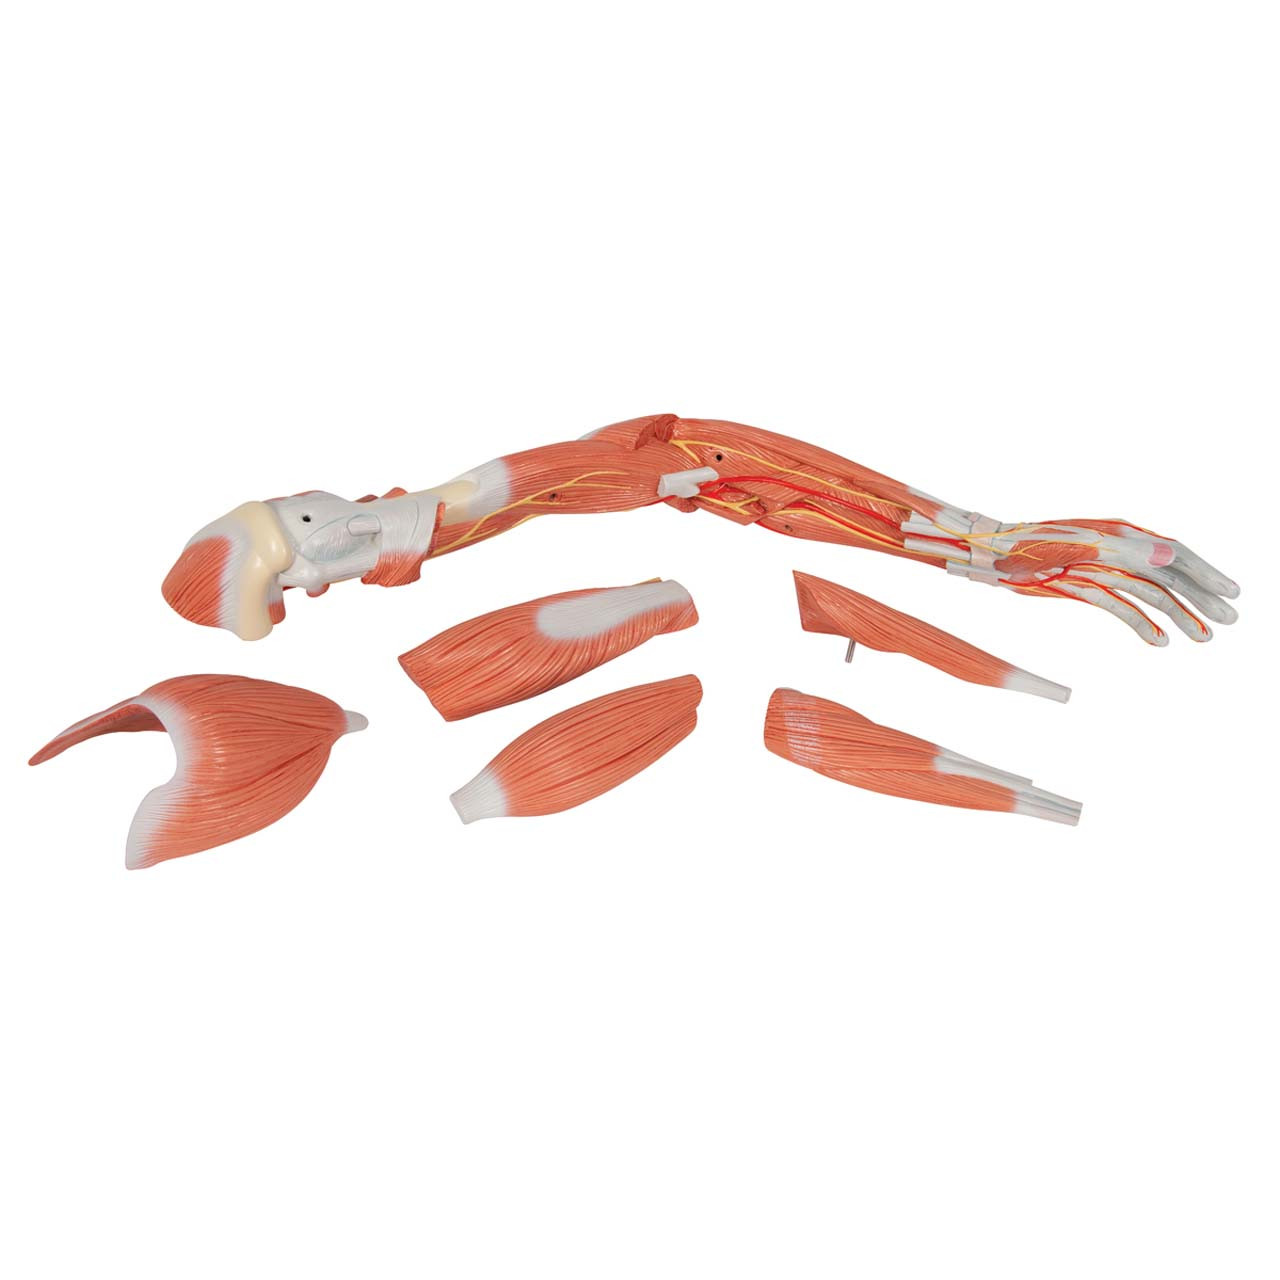 1000347 - Deluxe Muscle Arm, 6 part, Life Size